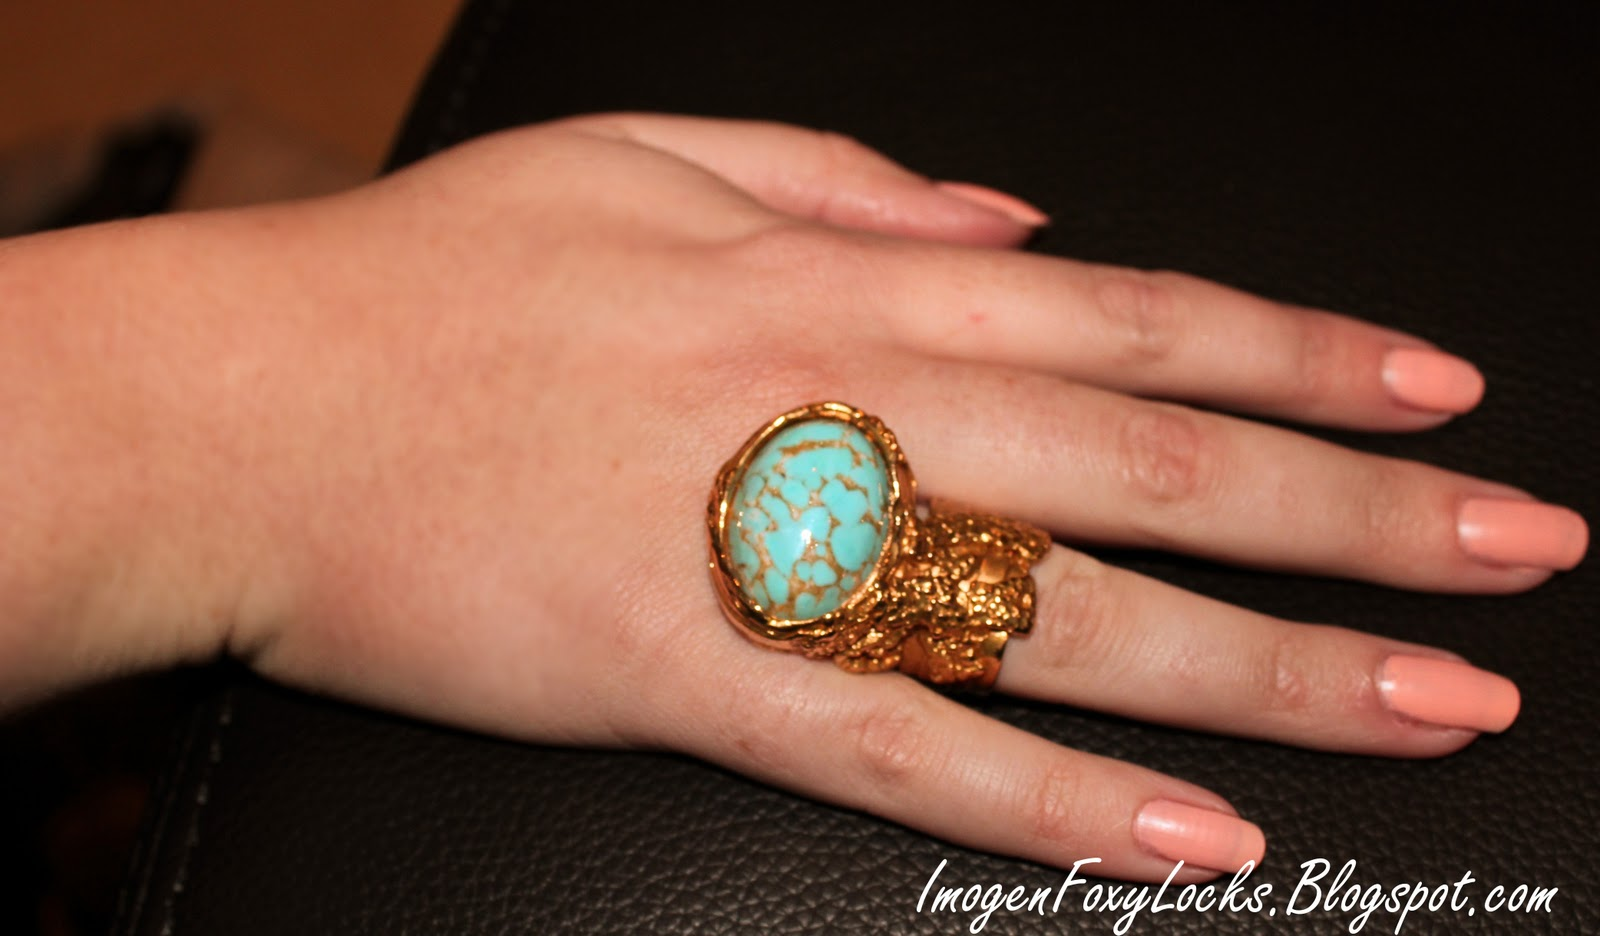 3636091e900e Imogen foxy locks the beautiful ovale arty ring turquoise JPG 1600x936  People with ysl arty ring